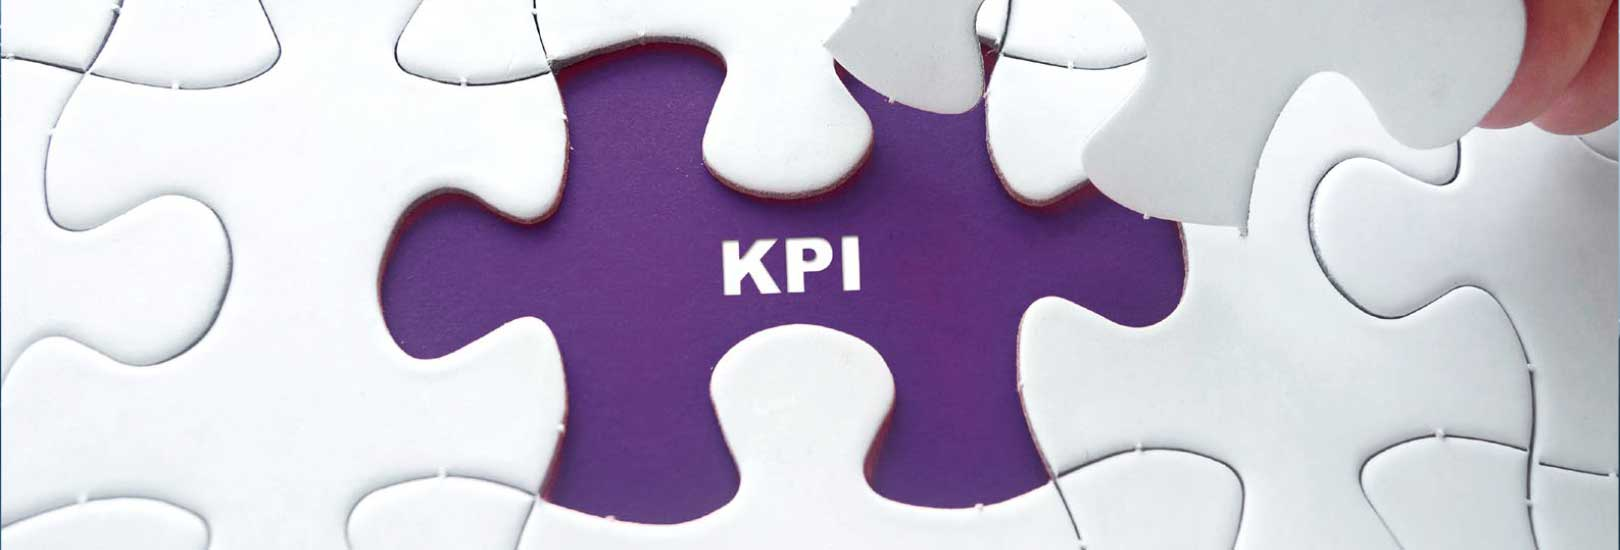 KPIs in the Contact Center background image